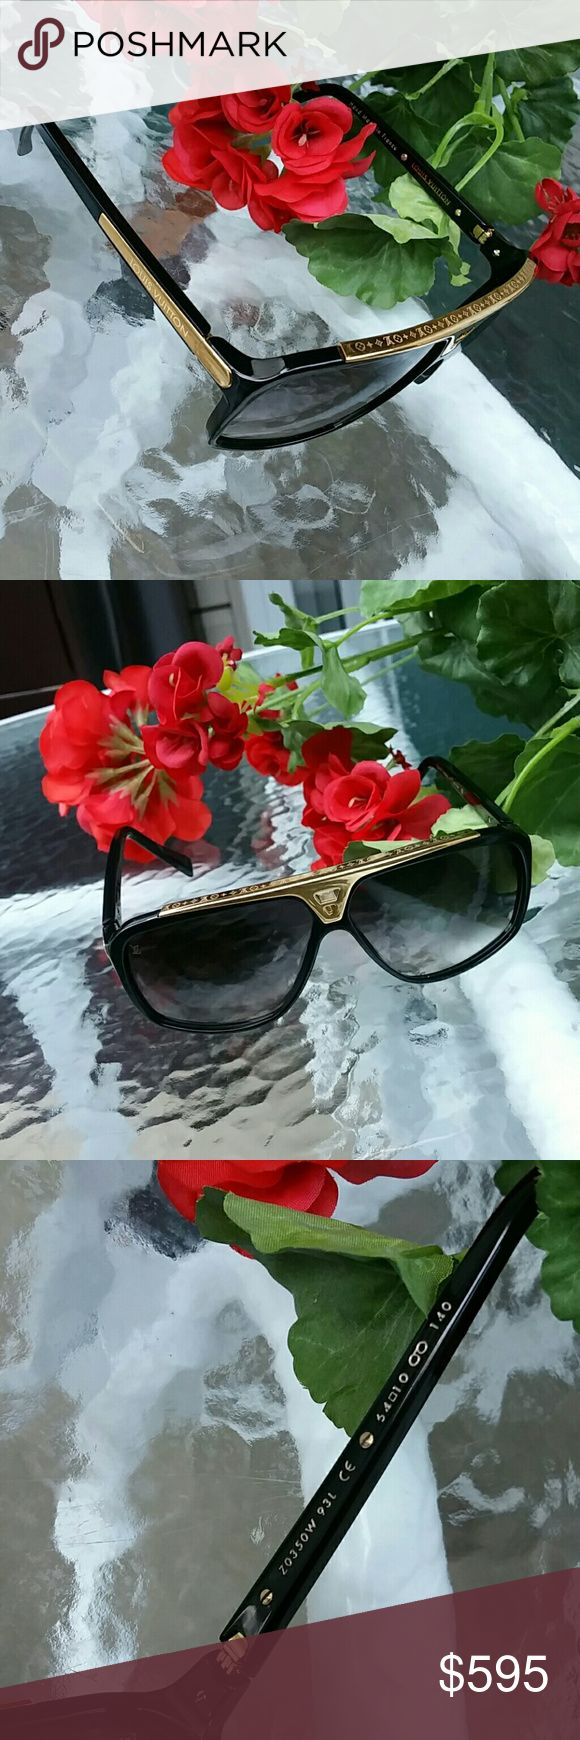 Authentic Louis vuitton evidence sunglasses Like new condition. .. no single scratch. ..no case but I will provide another high end designer sunglasses case Louis Vuitton Accessories